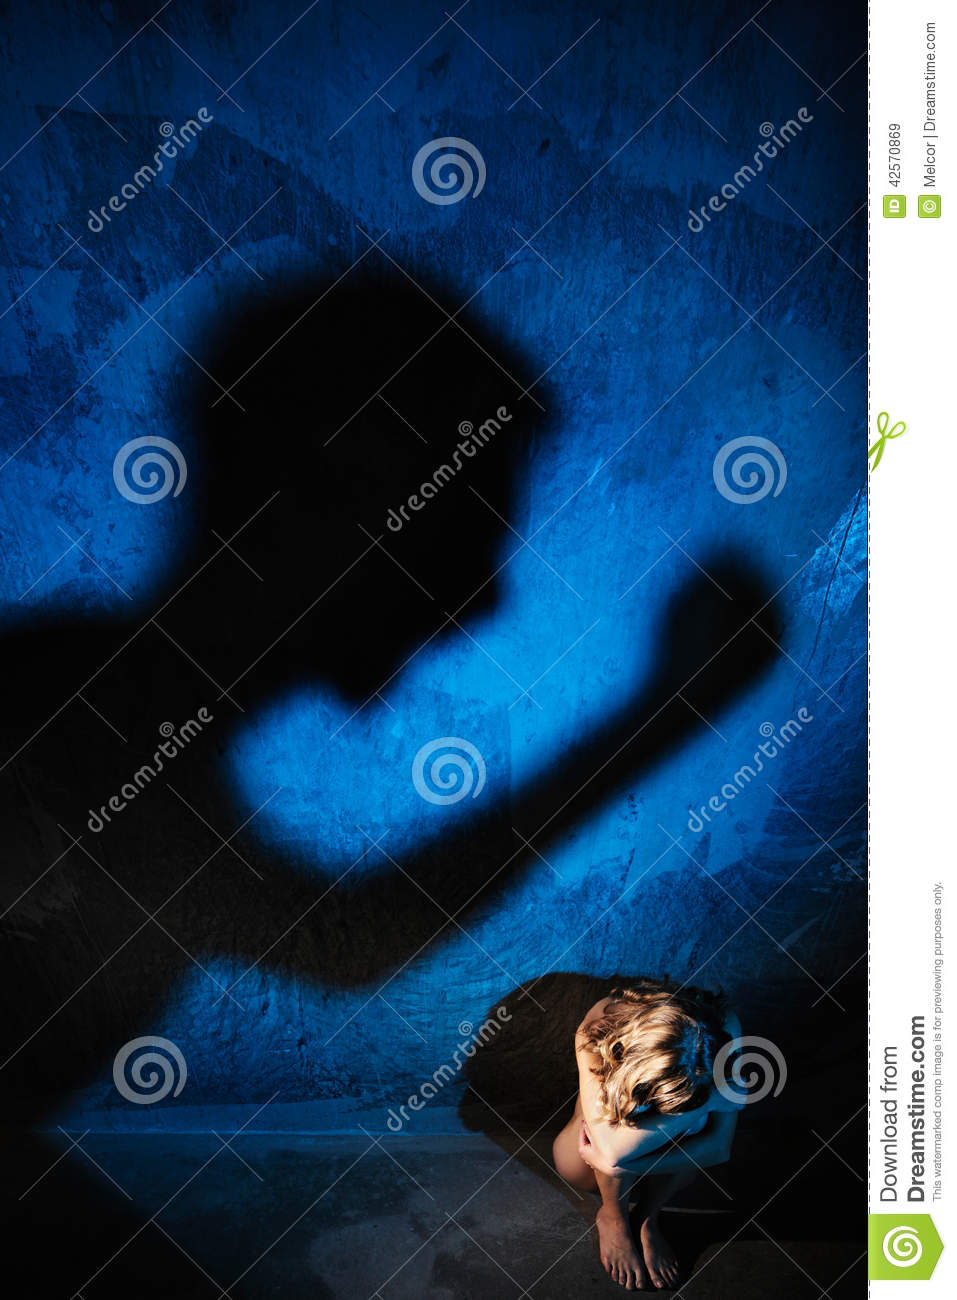 Dressed By Shadow Royalty Free Stock Images - Image: 31492159